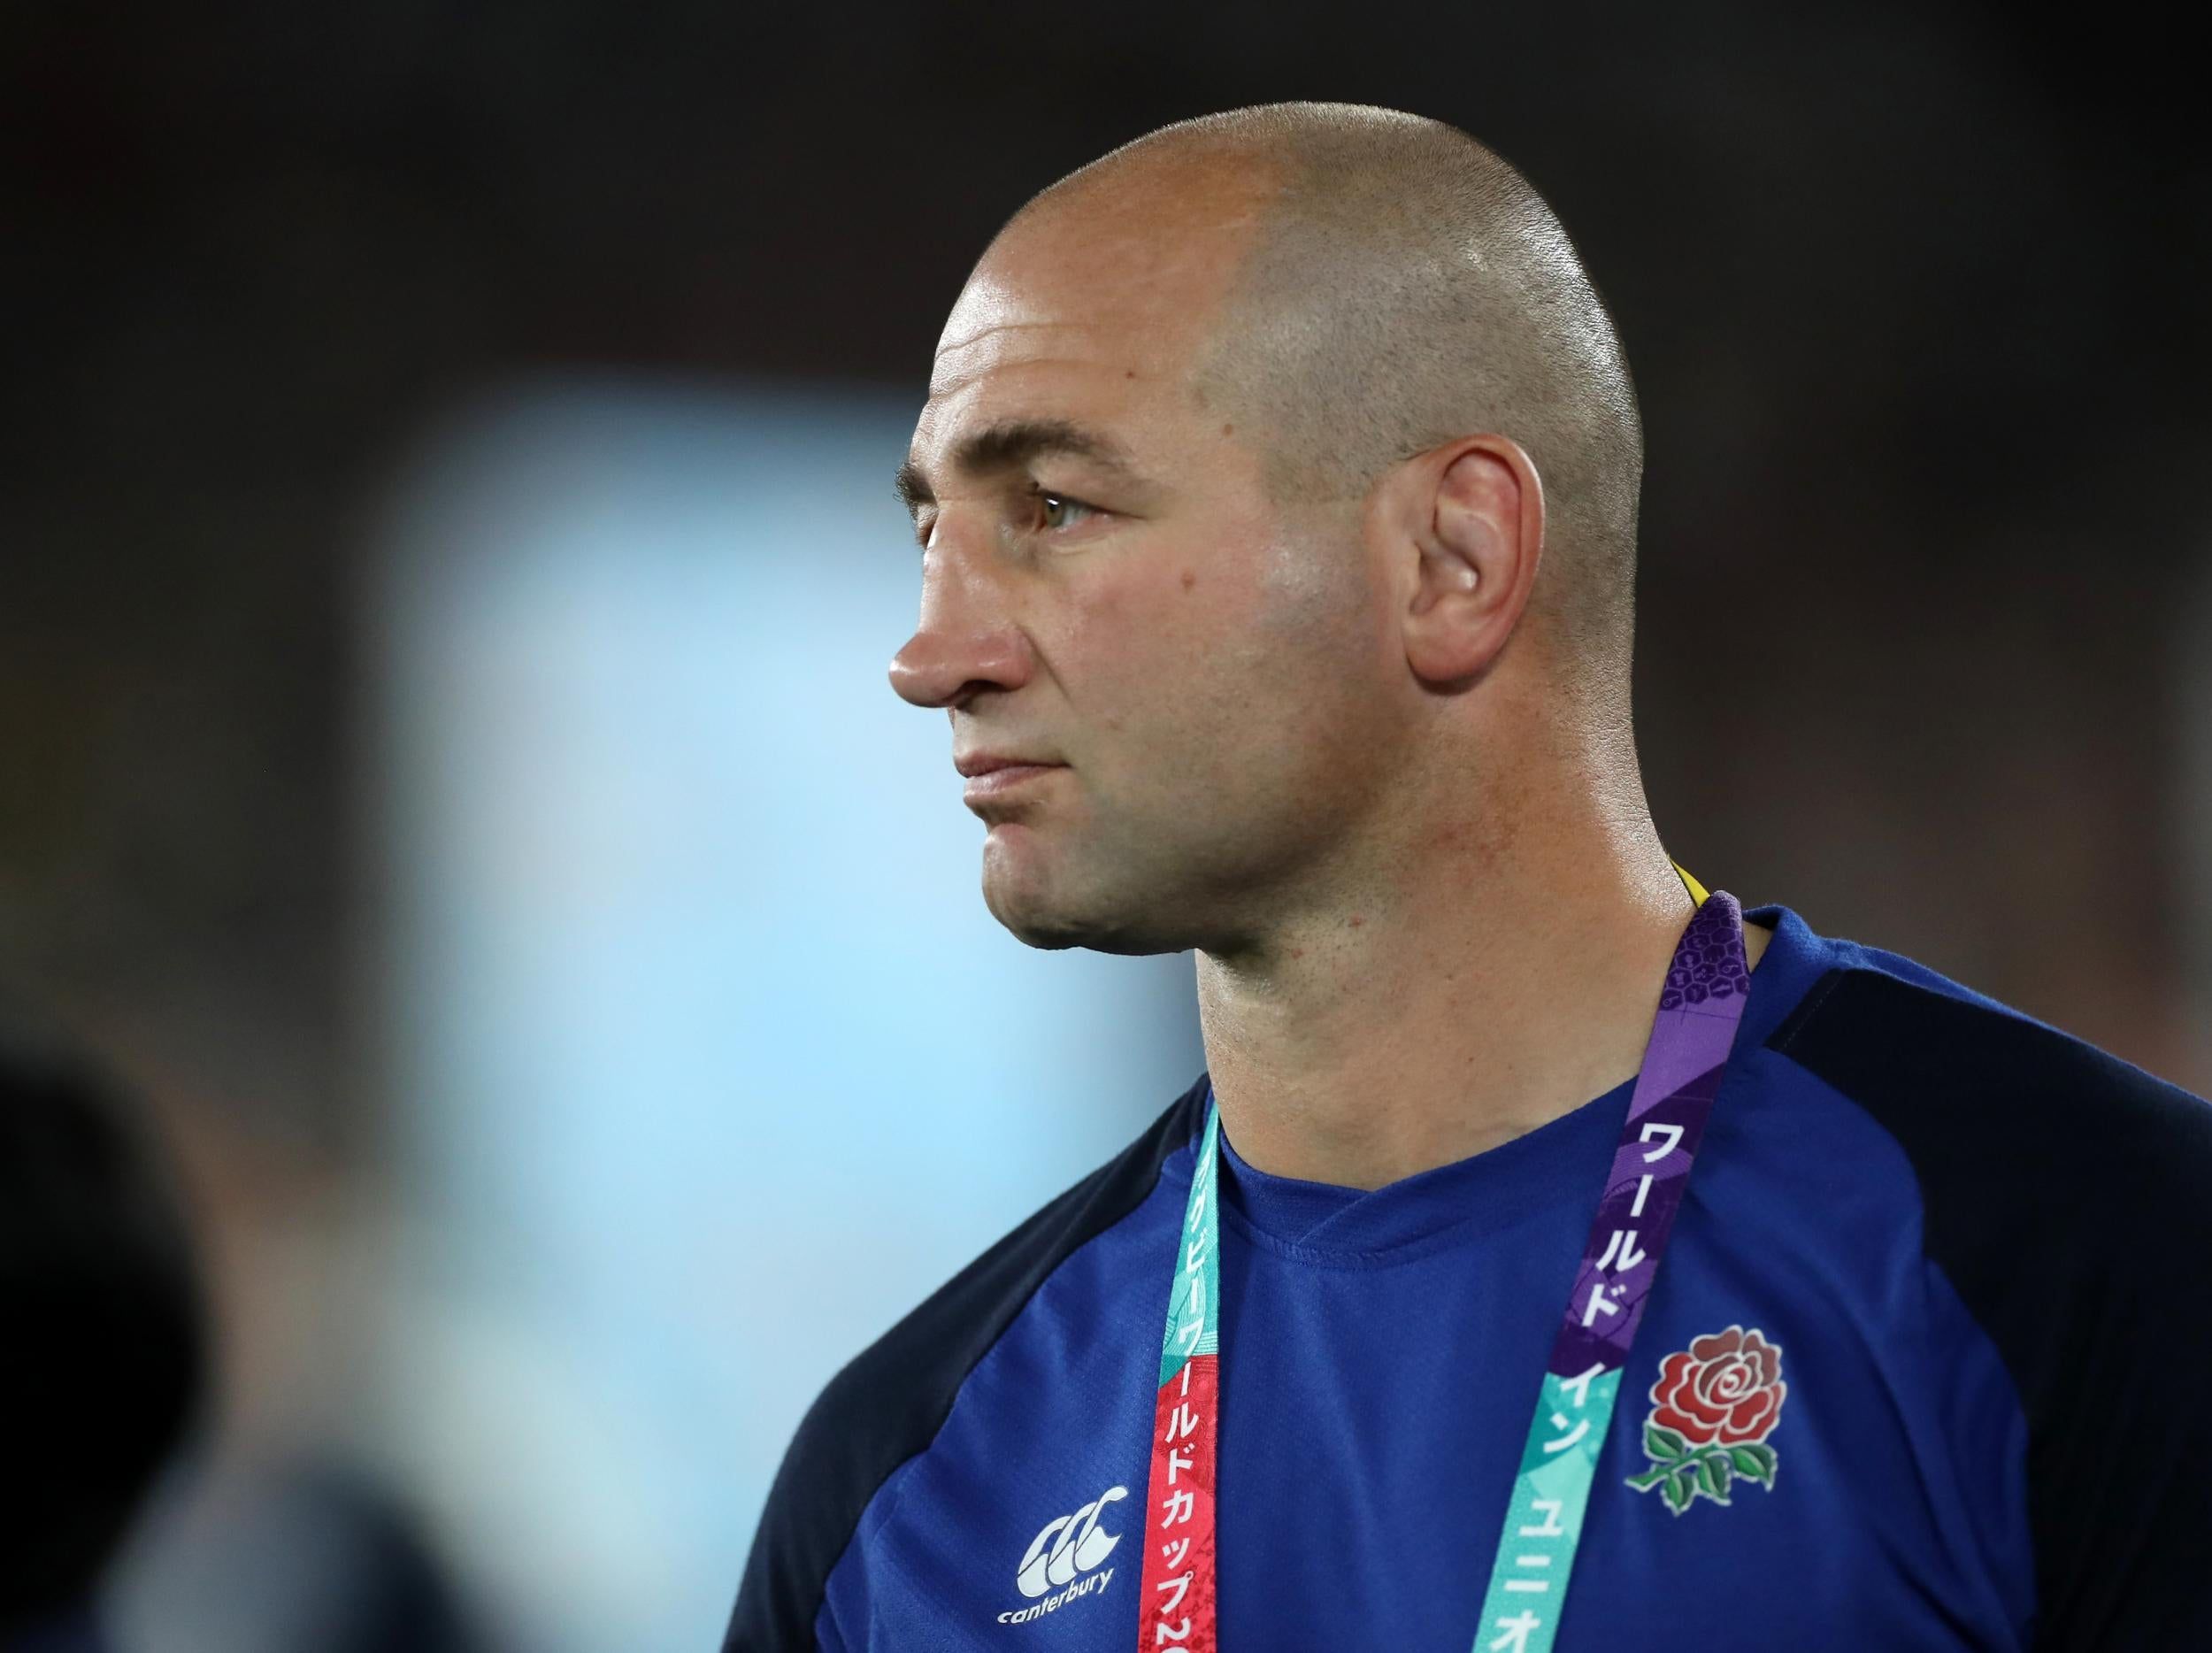 England rugby: Steve Borthwick leaves role as assistant coach with Jason Ryles to replace him